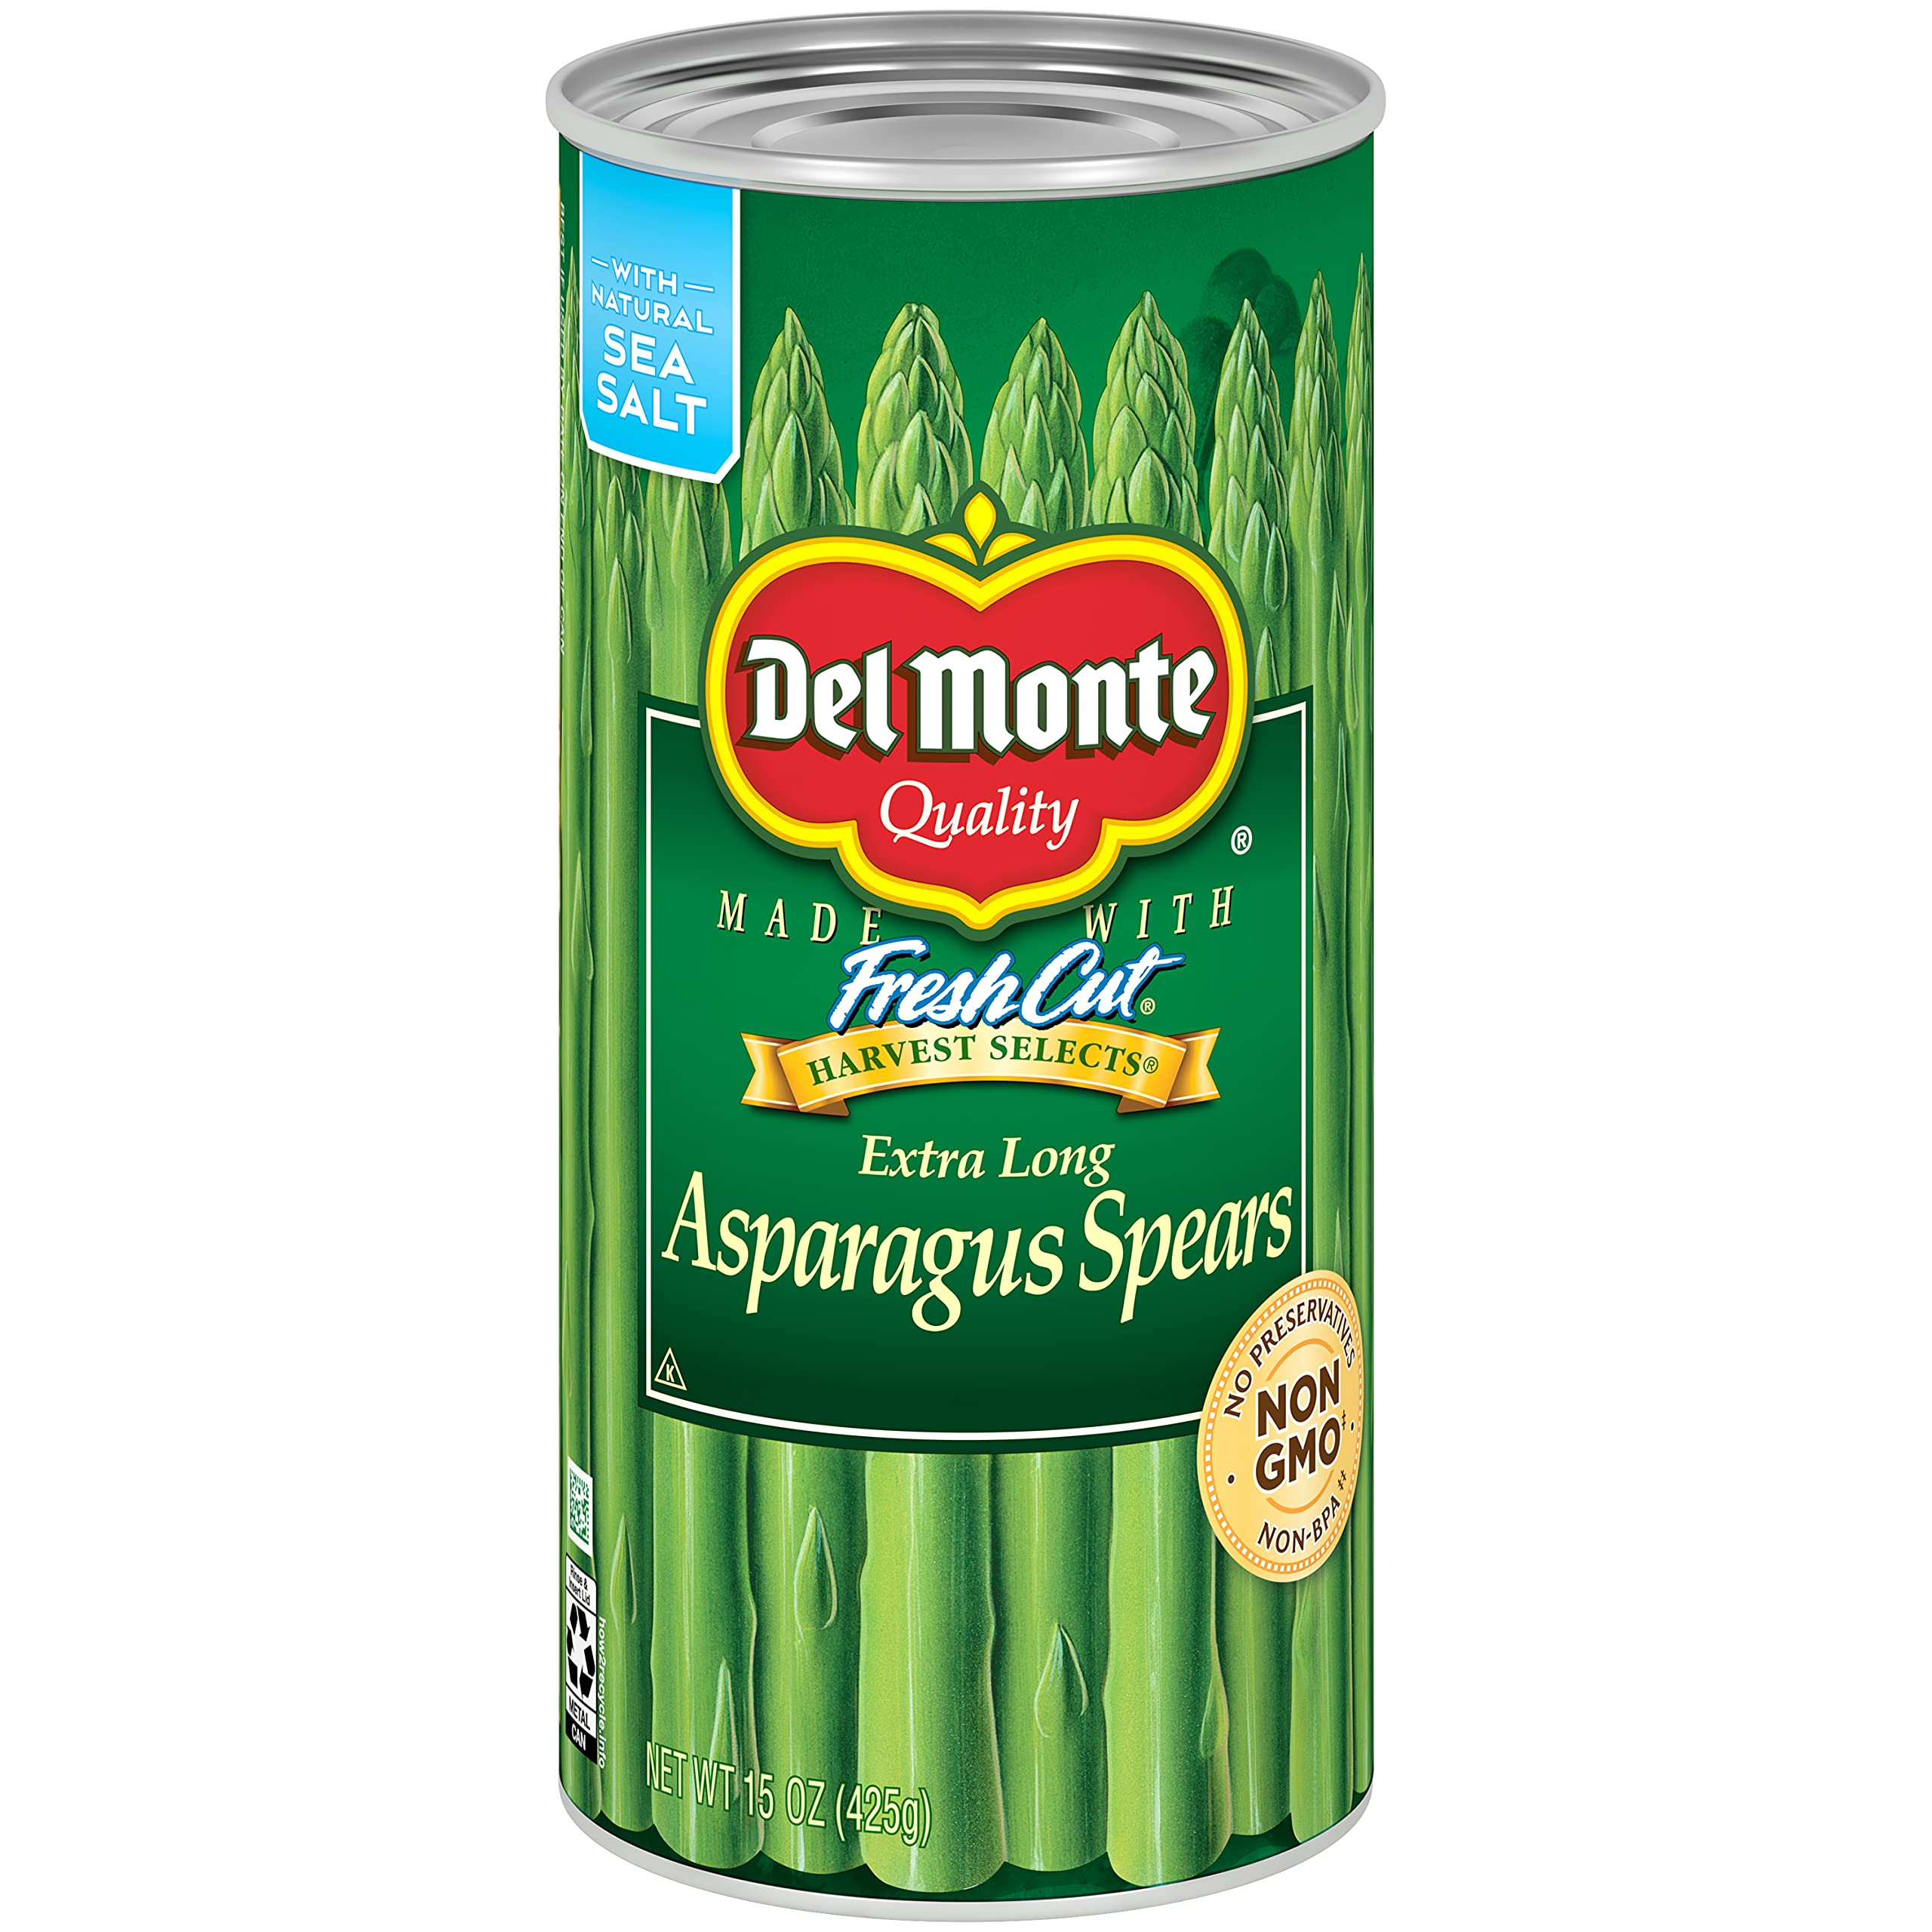 Del Monte Canned Extra Long Asparagus Spears